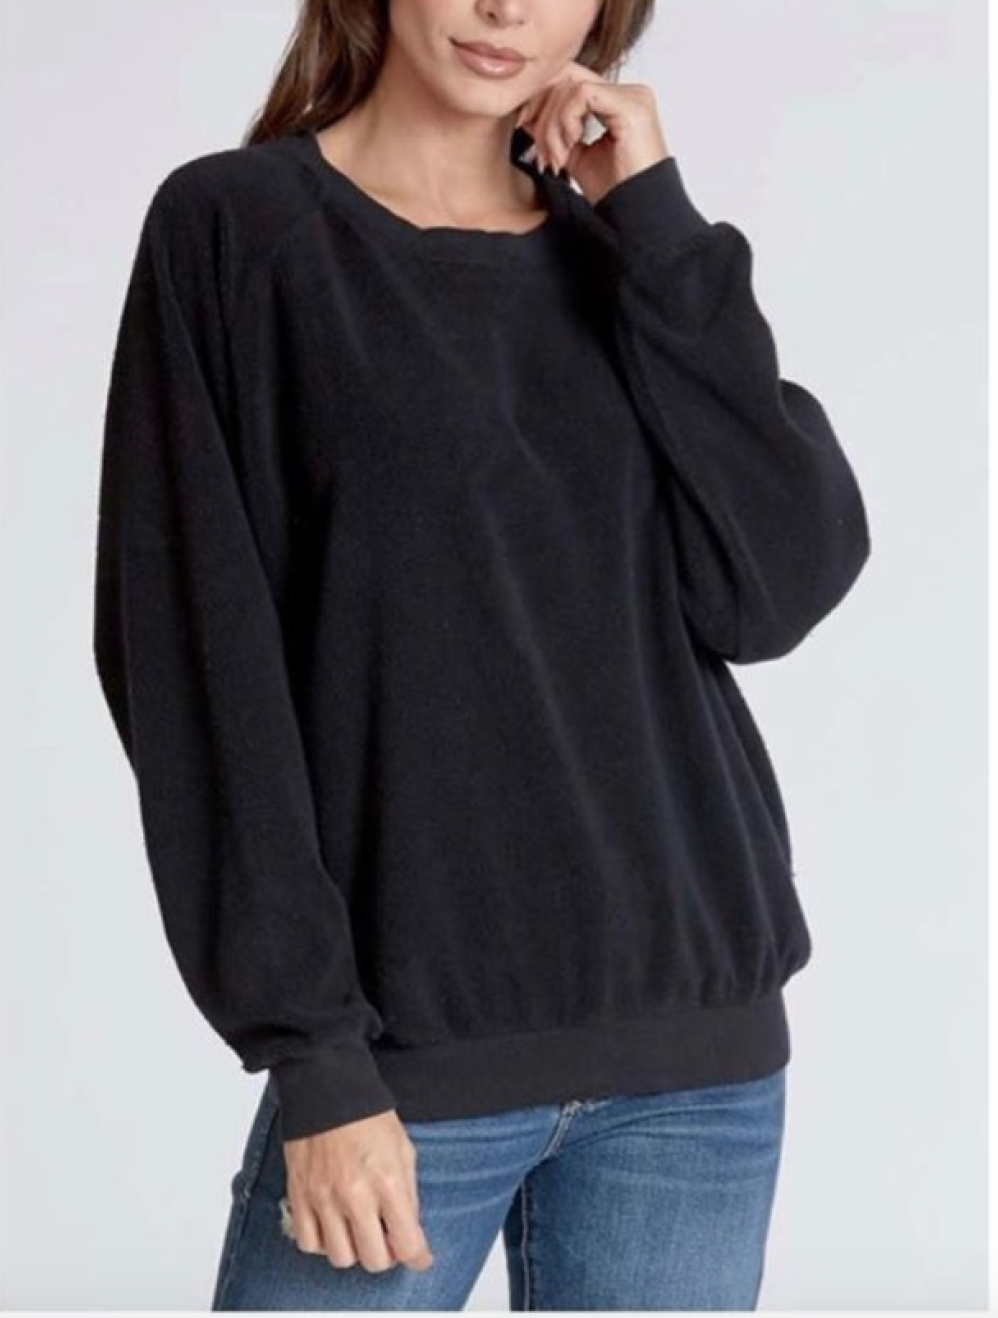 Black Tanya Sweater